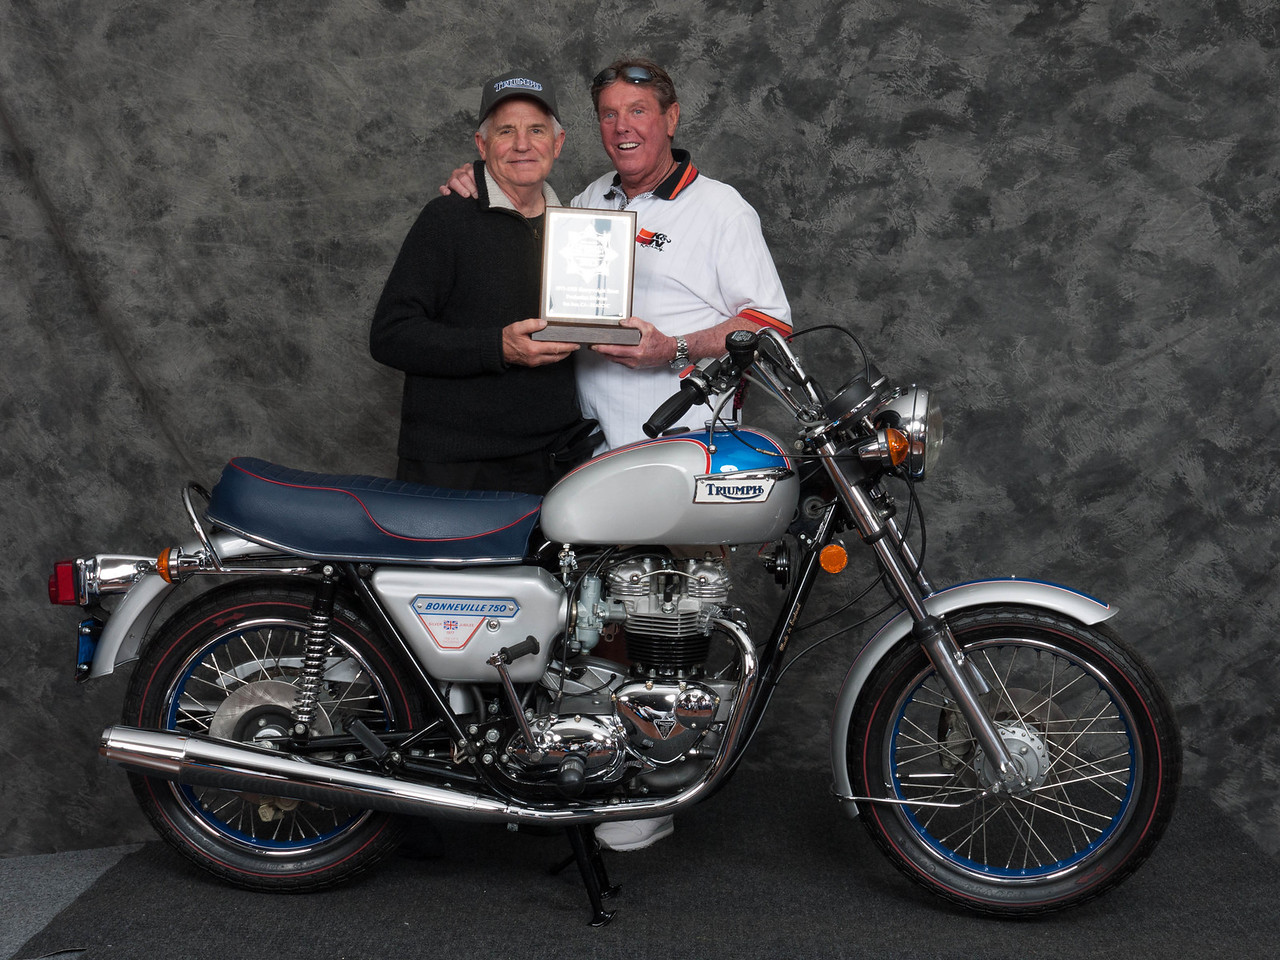 Phillip Fitting, Winner of Street Heavyweight 1971-1983 Production Class - 1977 Triumph Bonneville Silver Jubilee